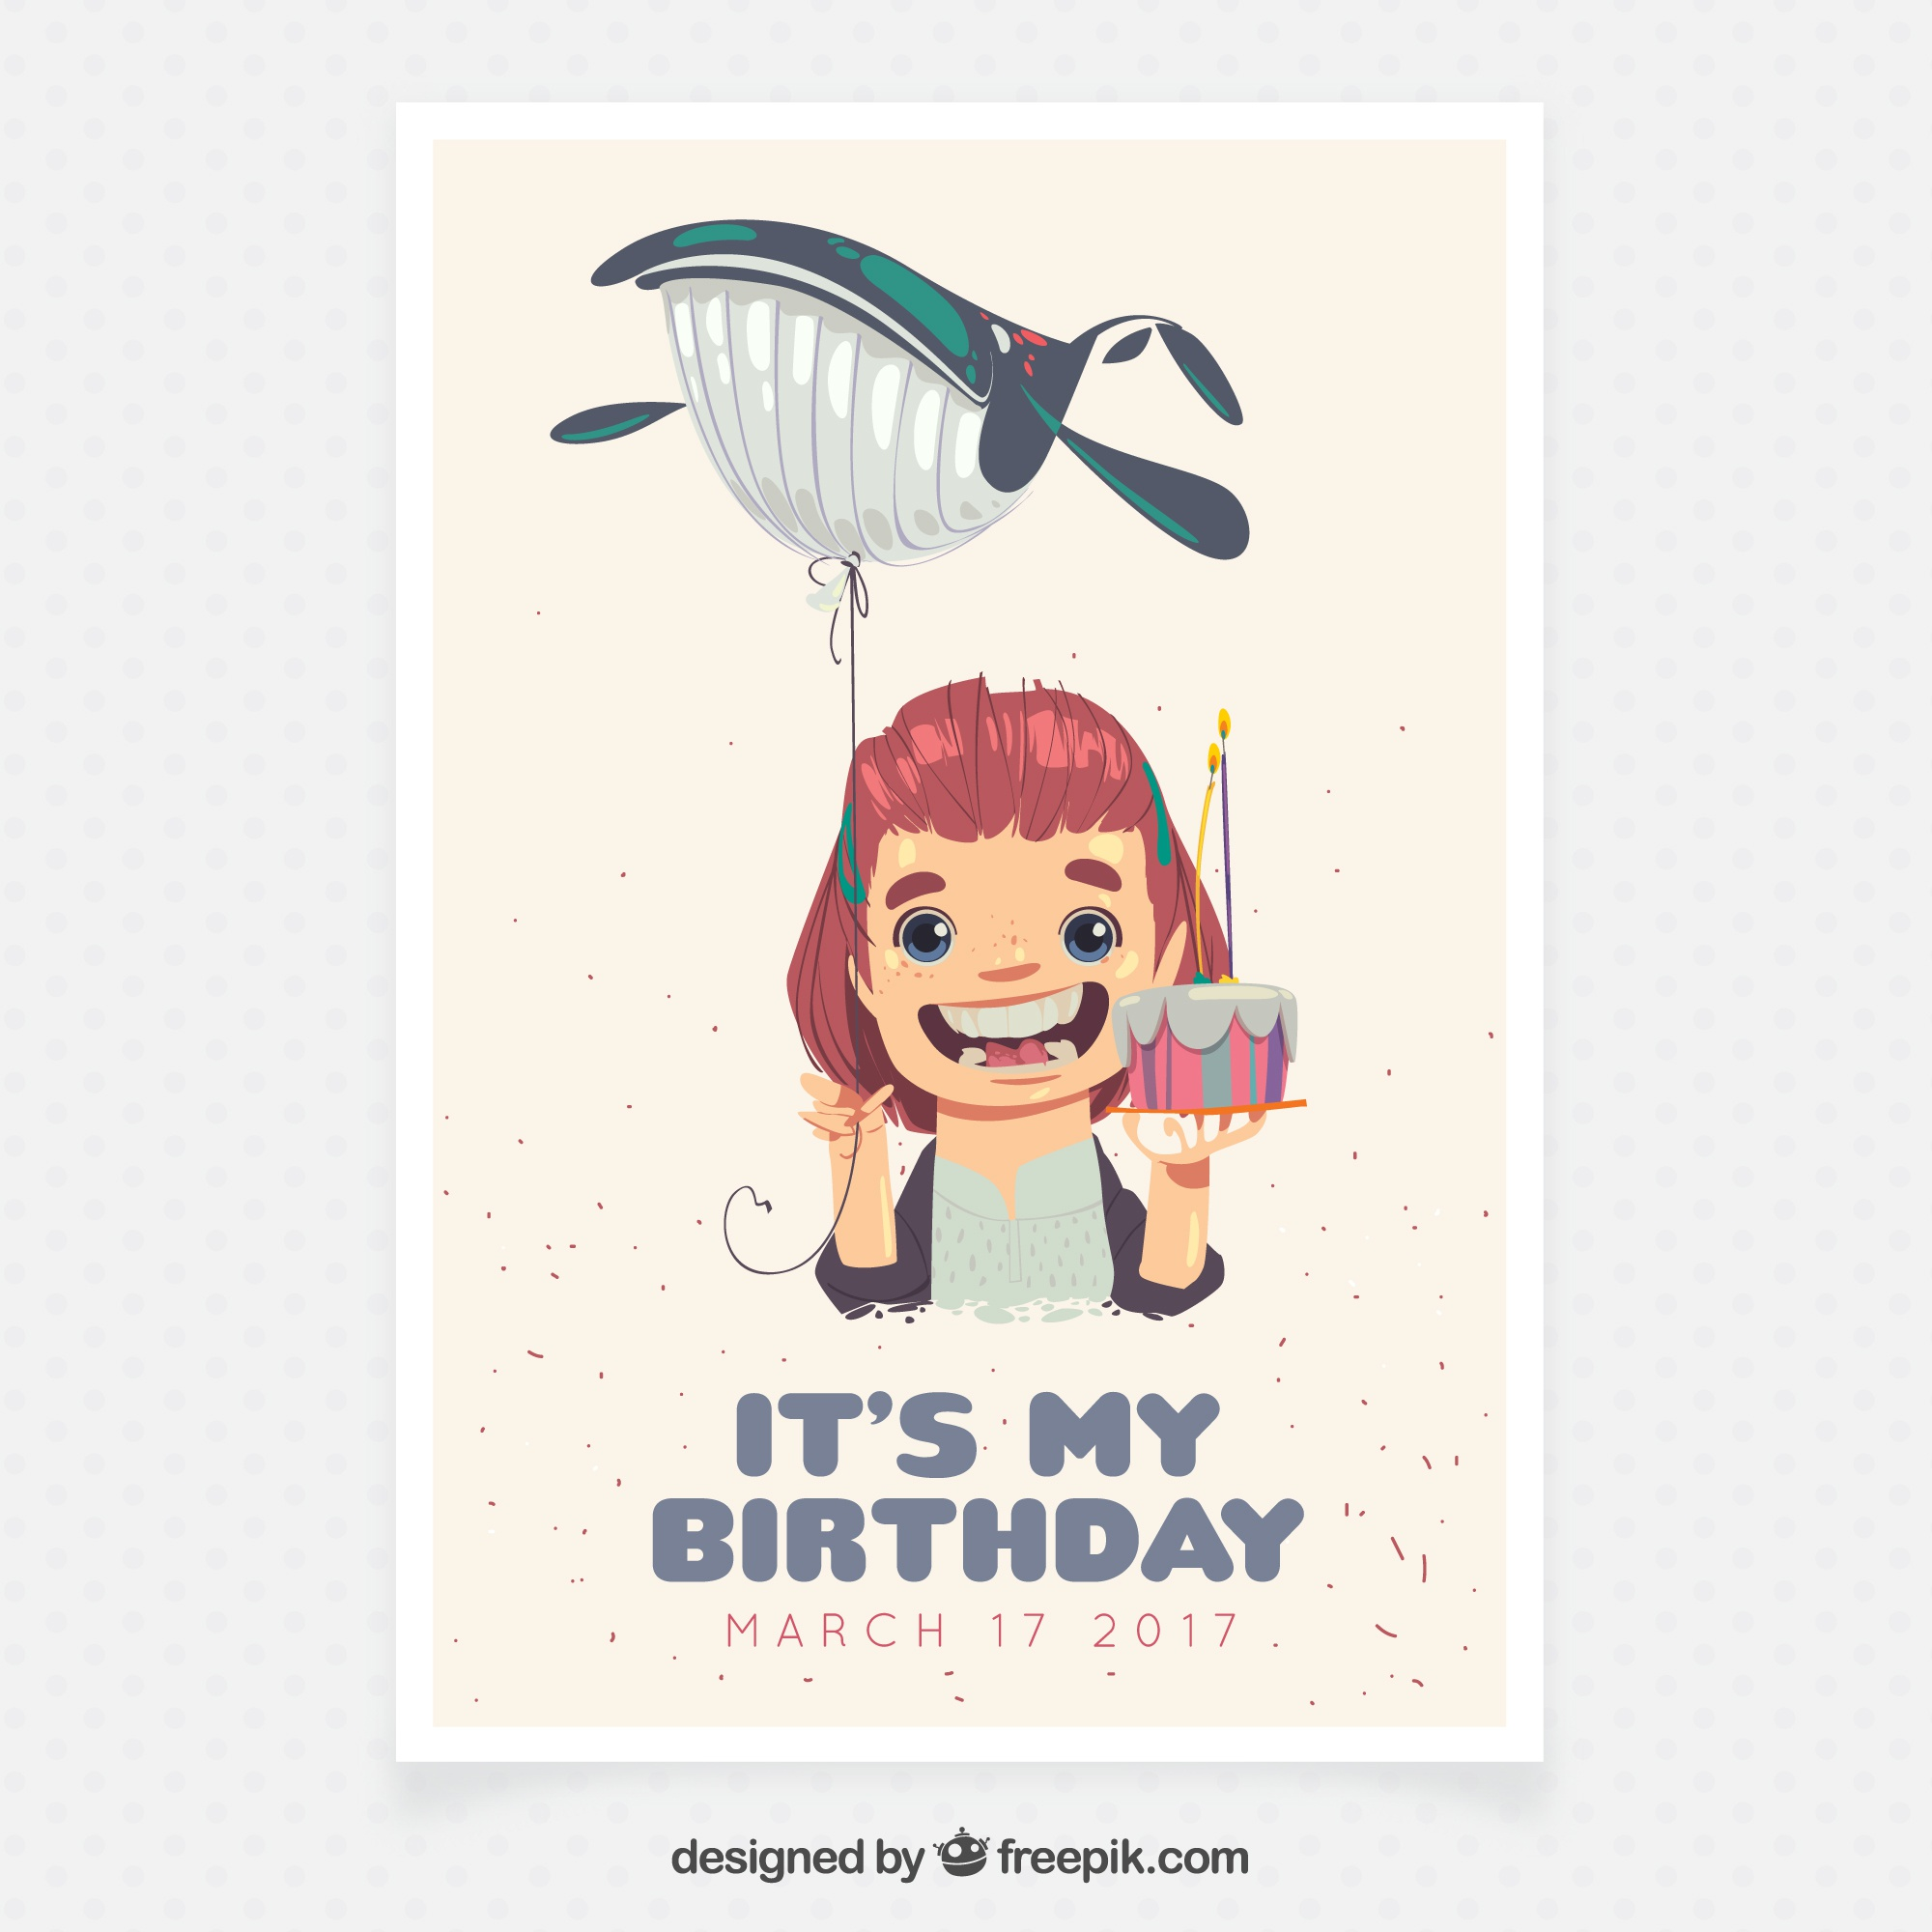 Birthday card for little girl with a whale balloon